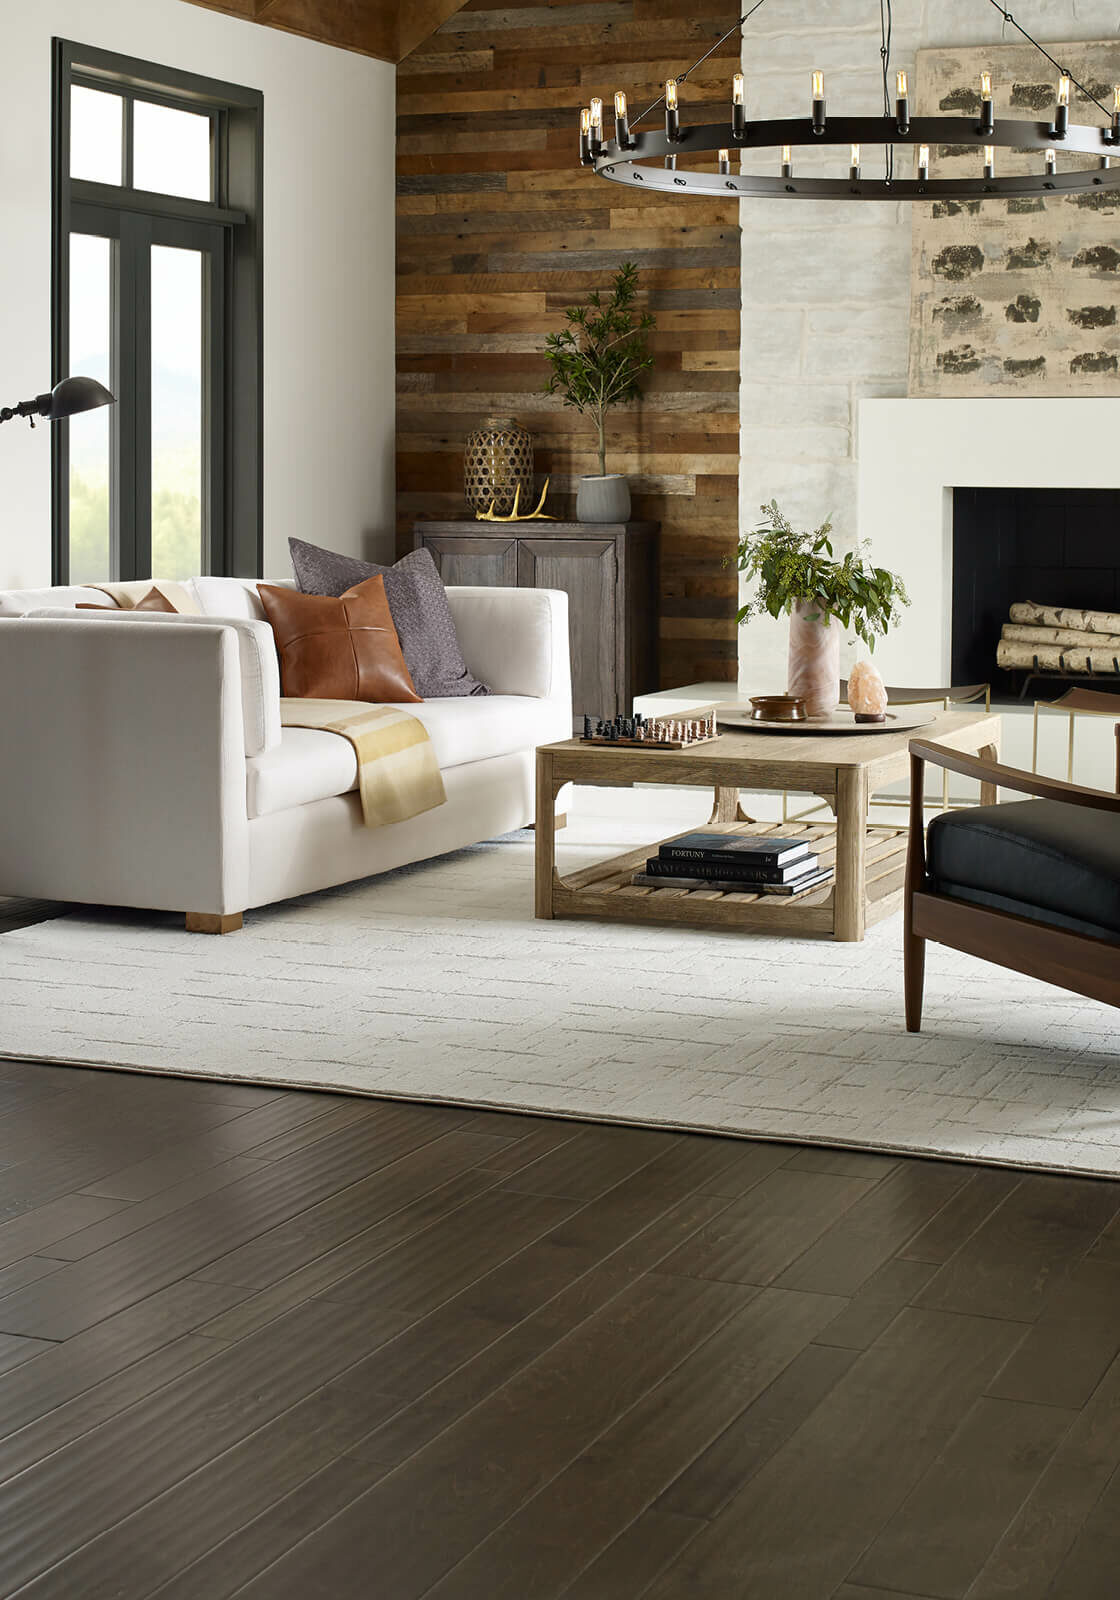 Key west harwood flooring | The Flooring Place